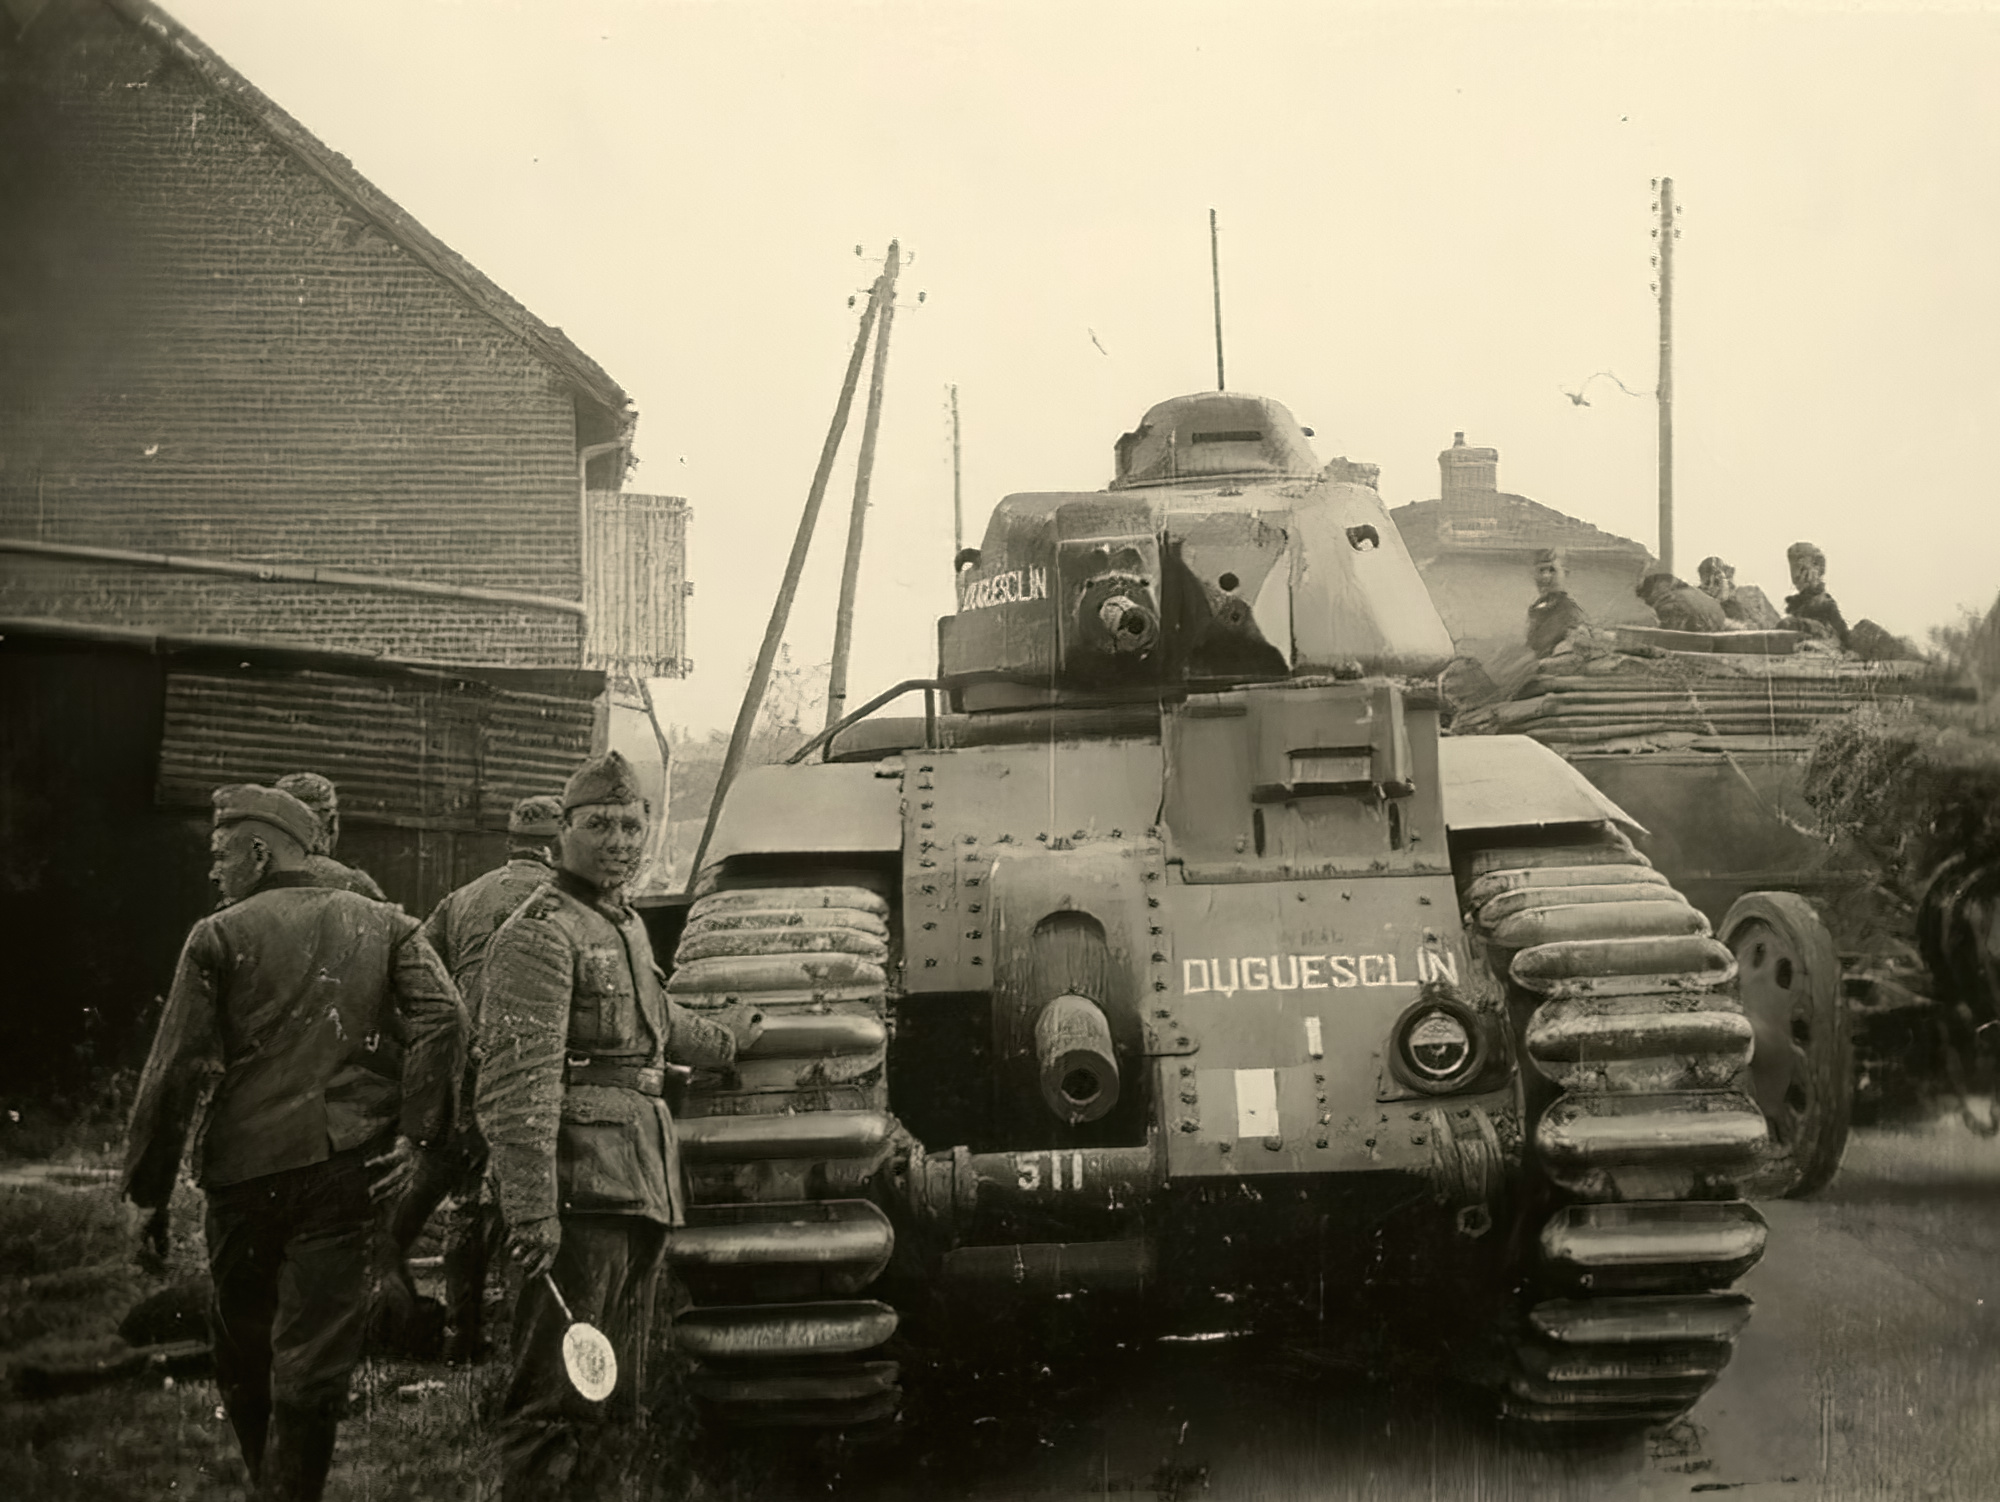 French Army Renault Char B1 named Duguesclin captured during the battle of France 1940 ebay 01